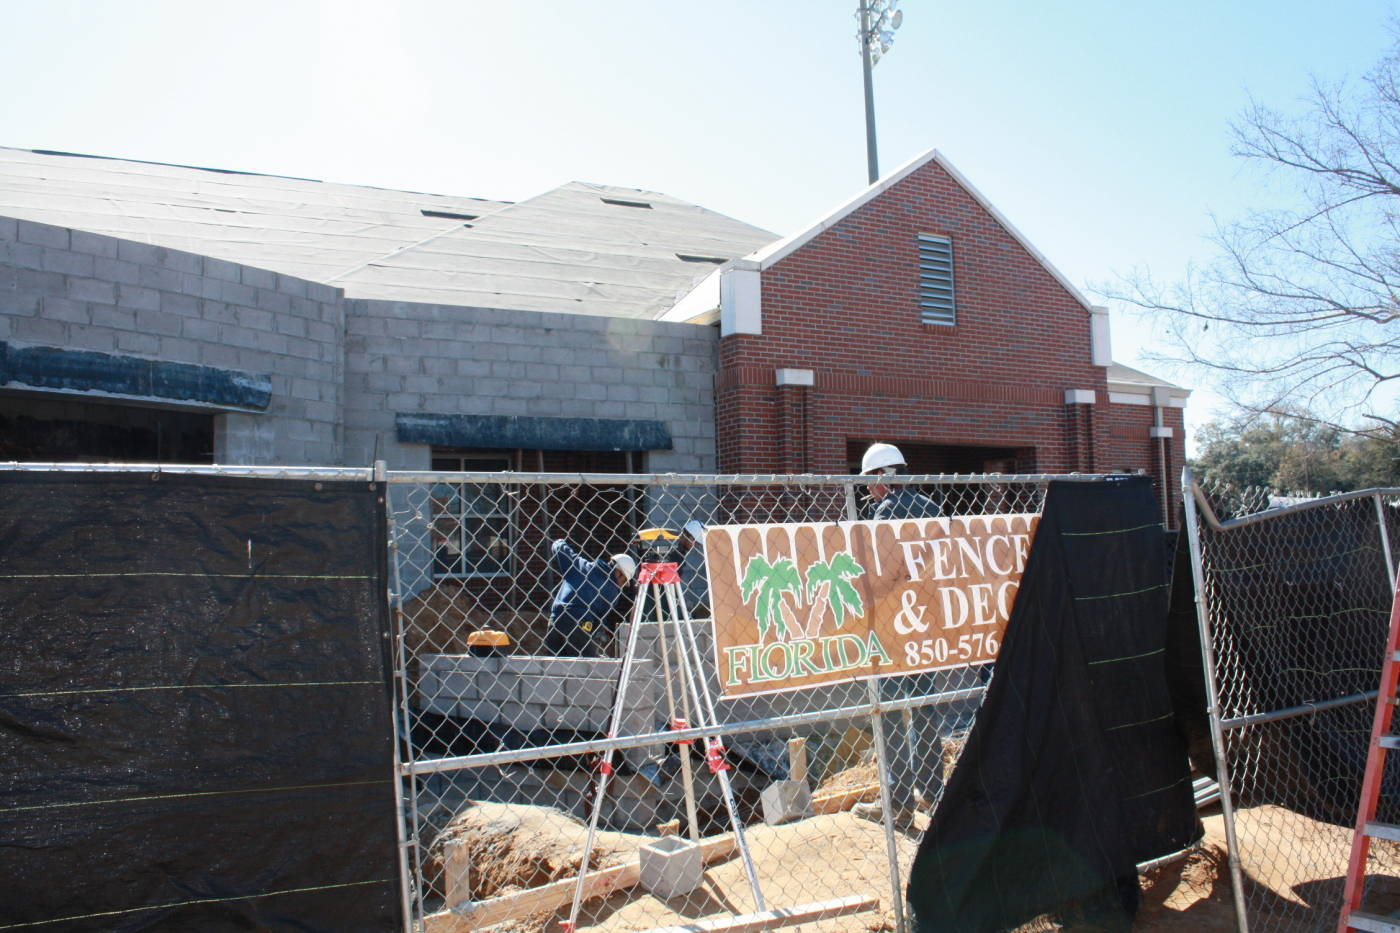 The Mary Ann Stiles and Barry Smith Team Building at the Soccer/Softball Complex. As of January 30, 2009.